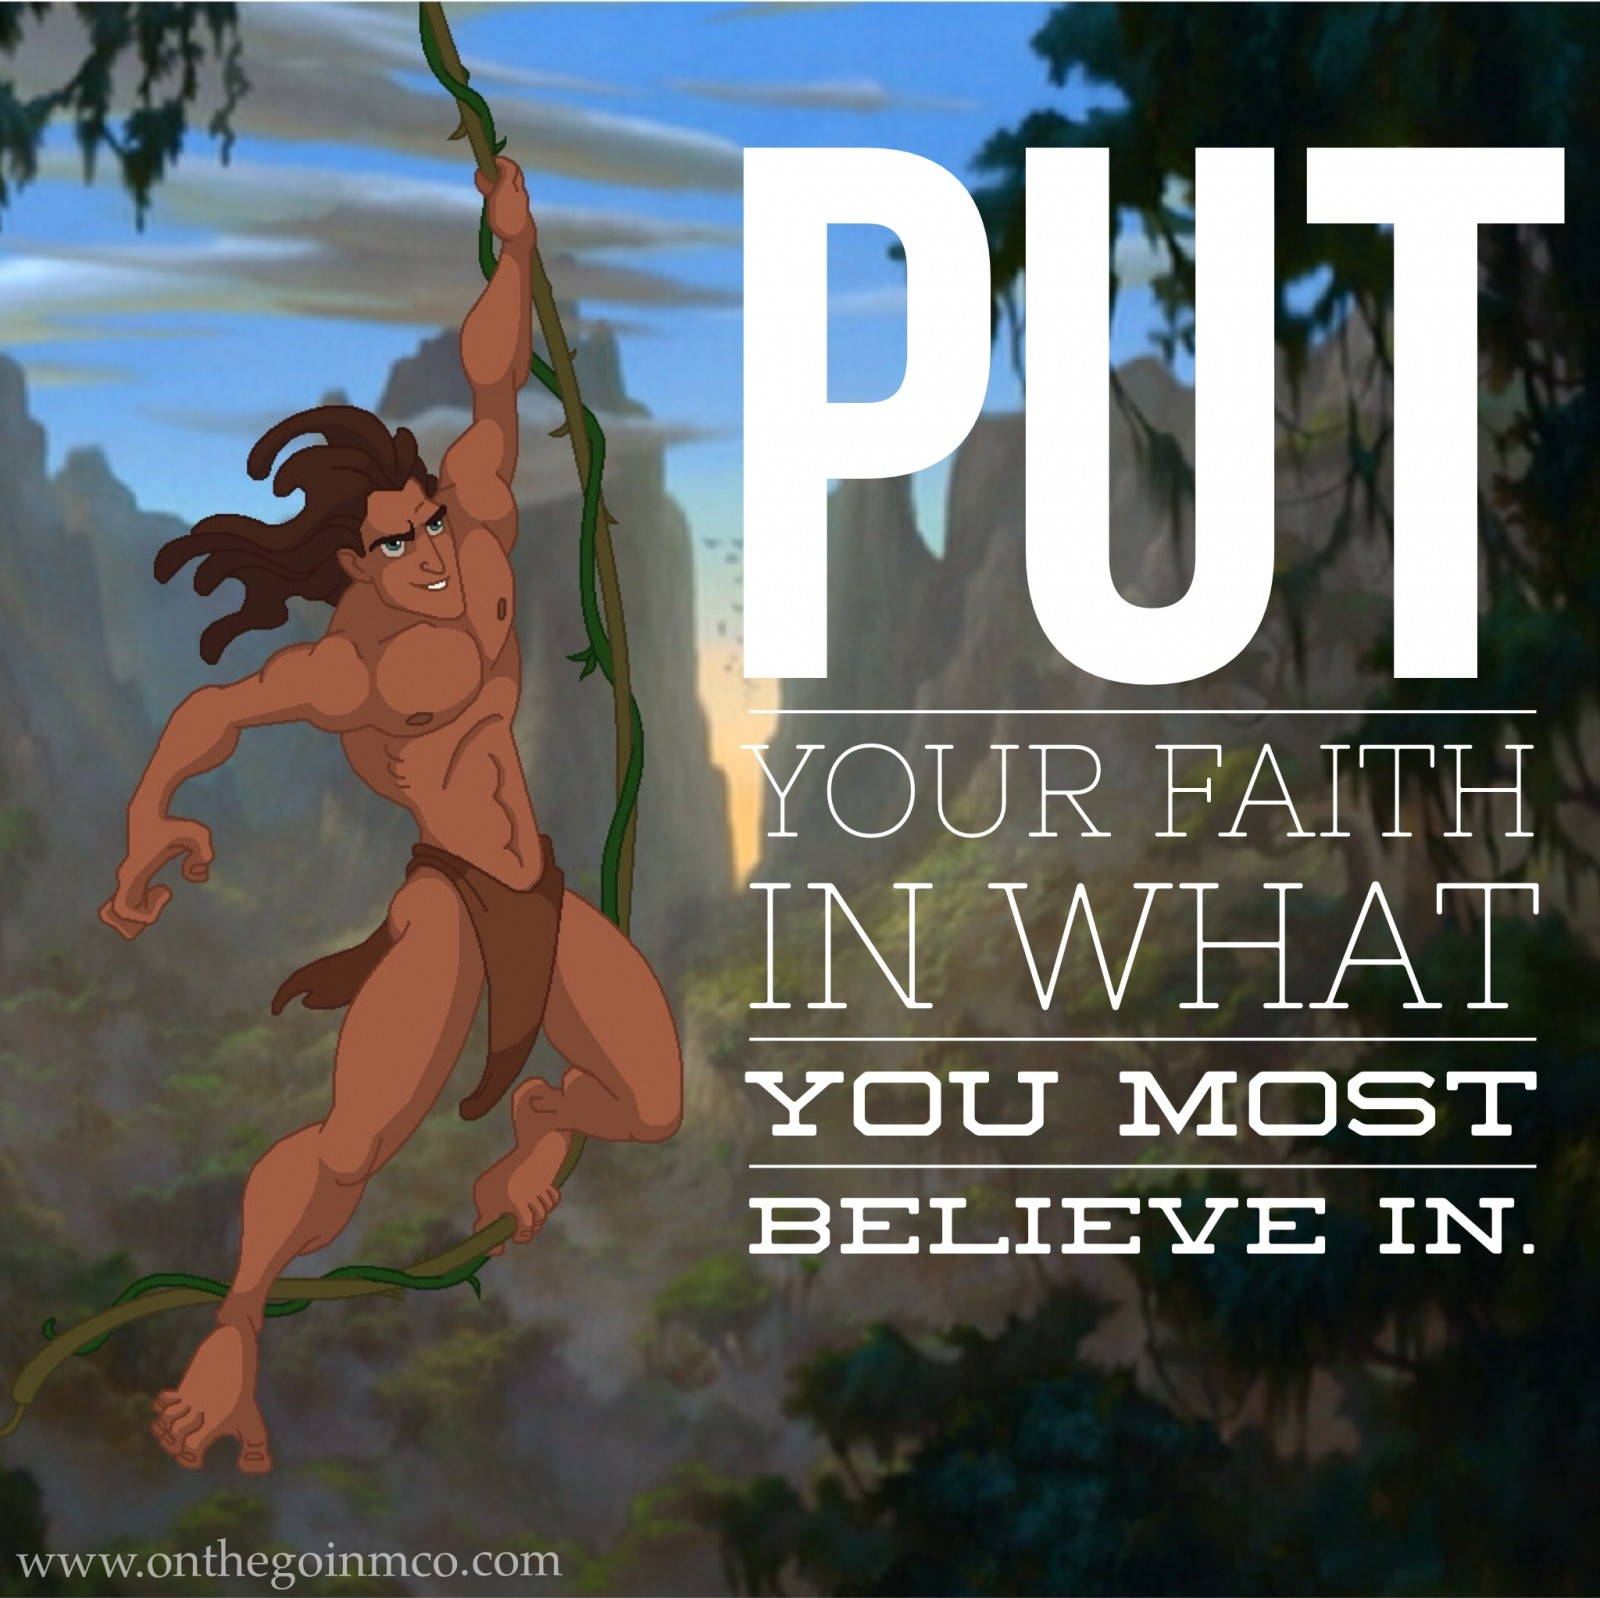 Disney Movie Quotes After a long week Tarzan